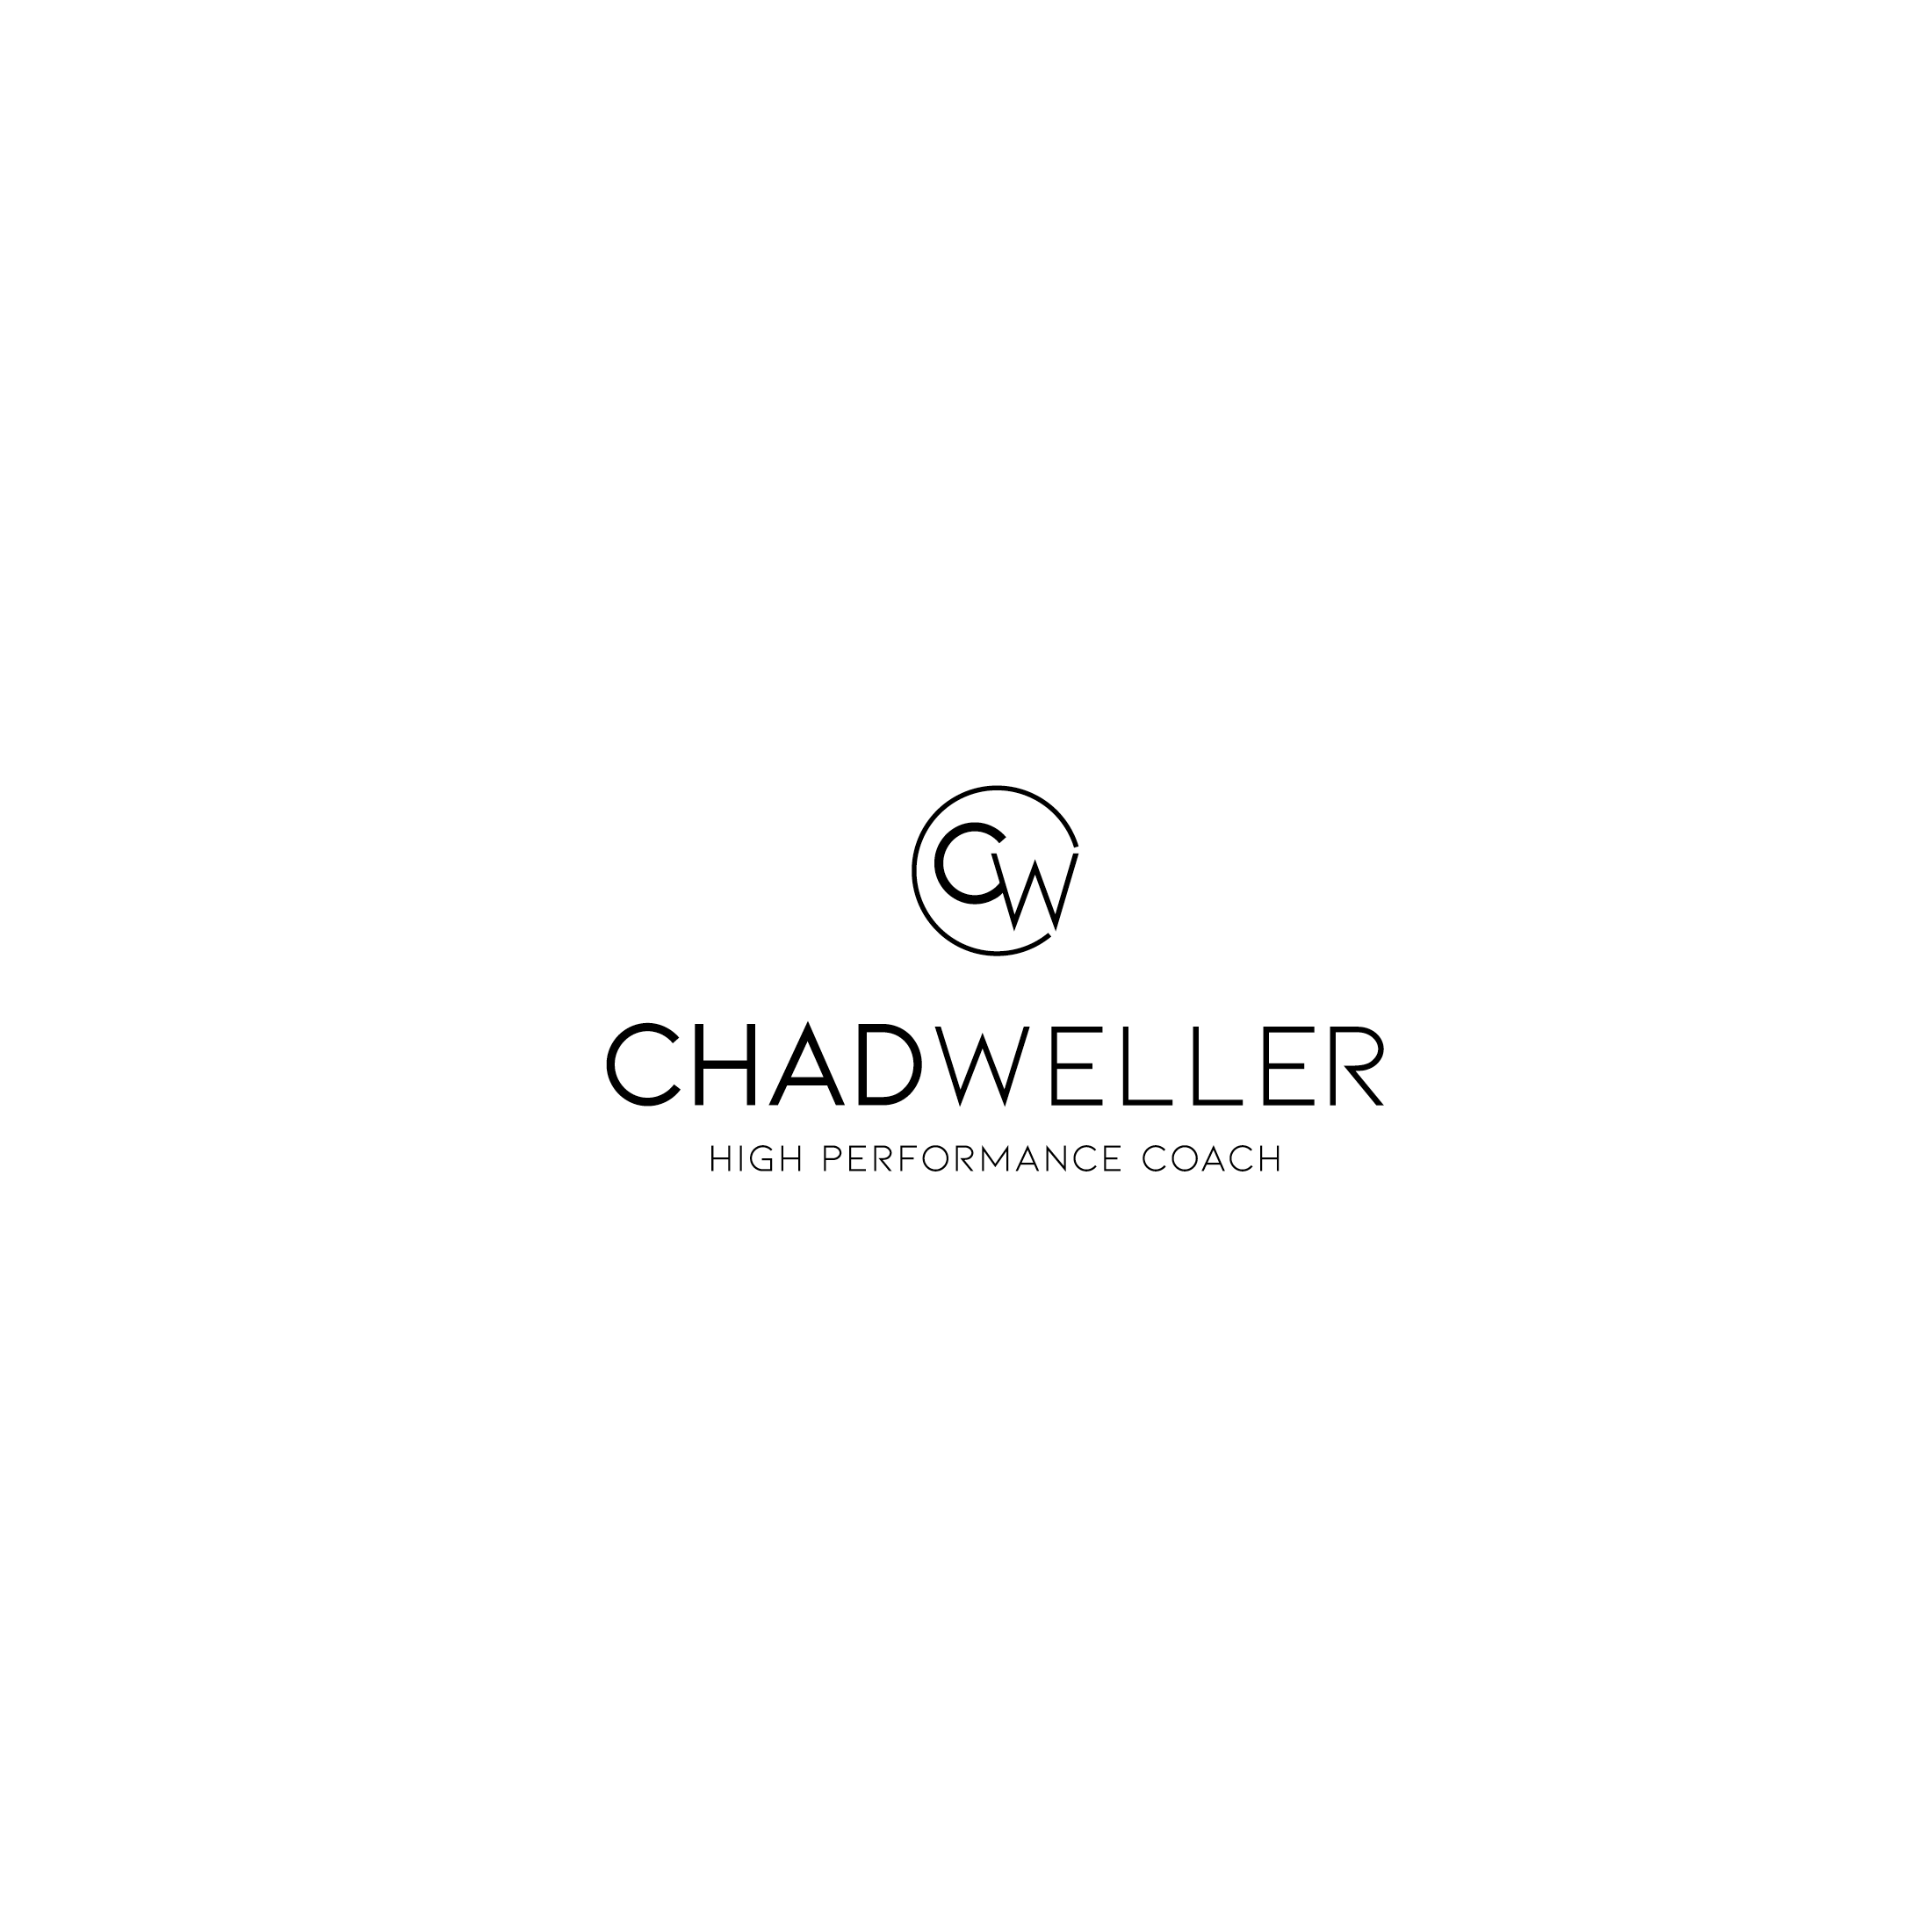 ChadWellerLogos 3 Outlined3.png